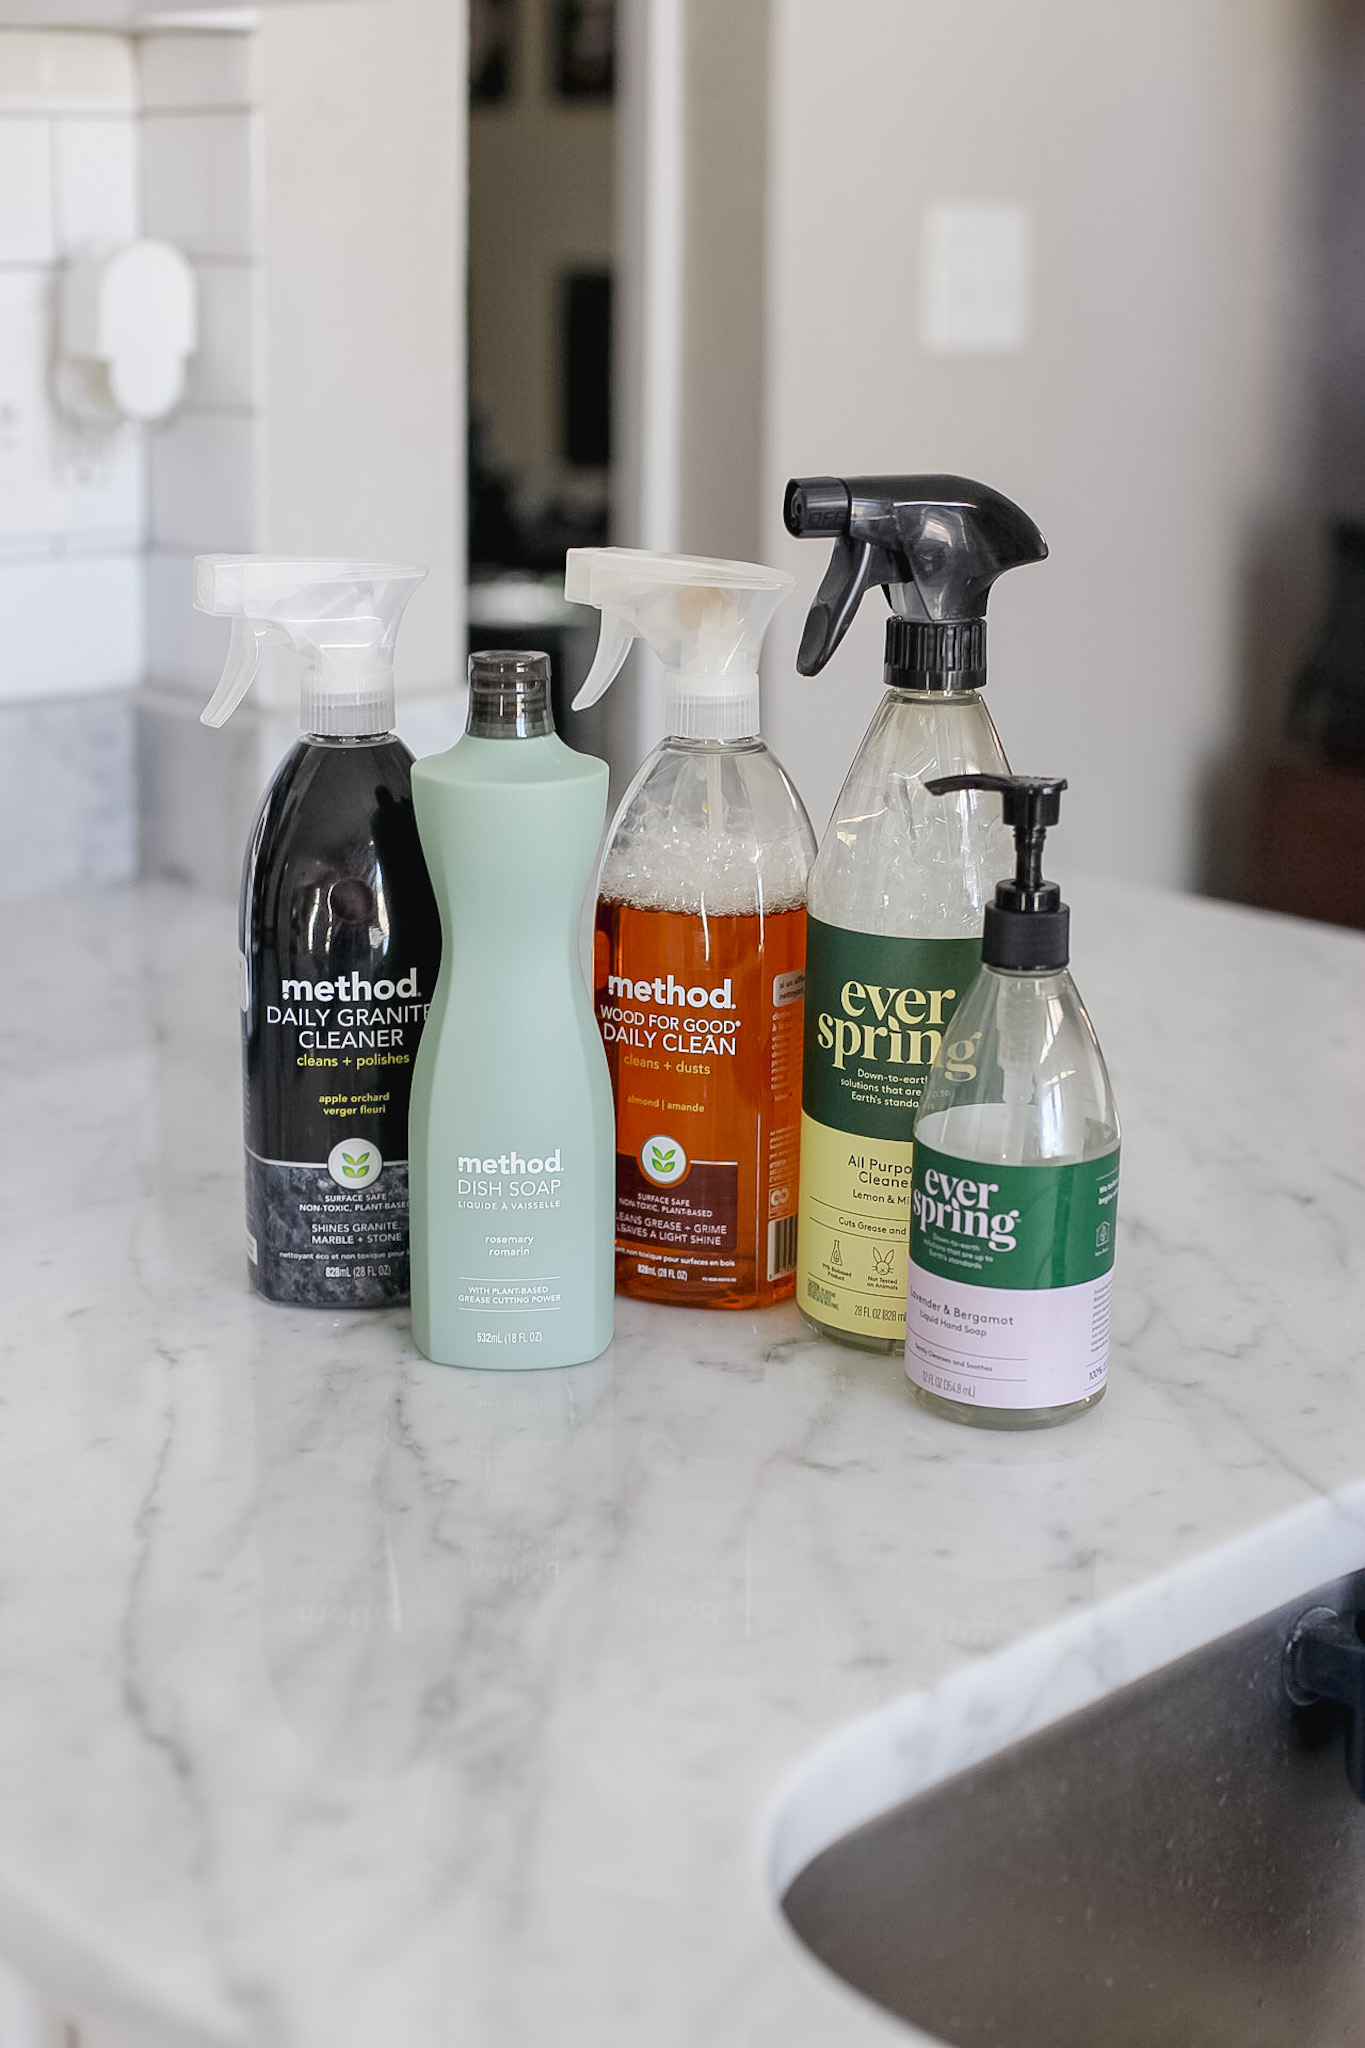 The Best Natural Cleaning Products In 2020 Non Toxic Cleaning Products